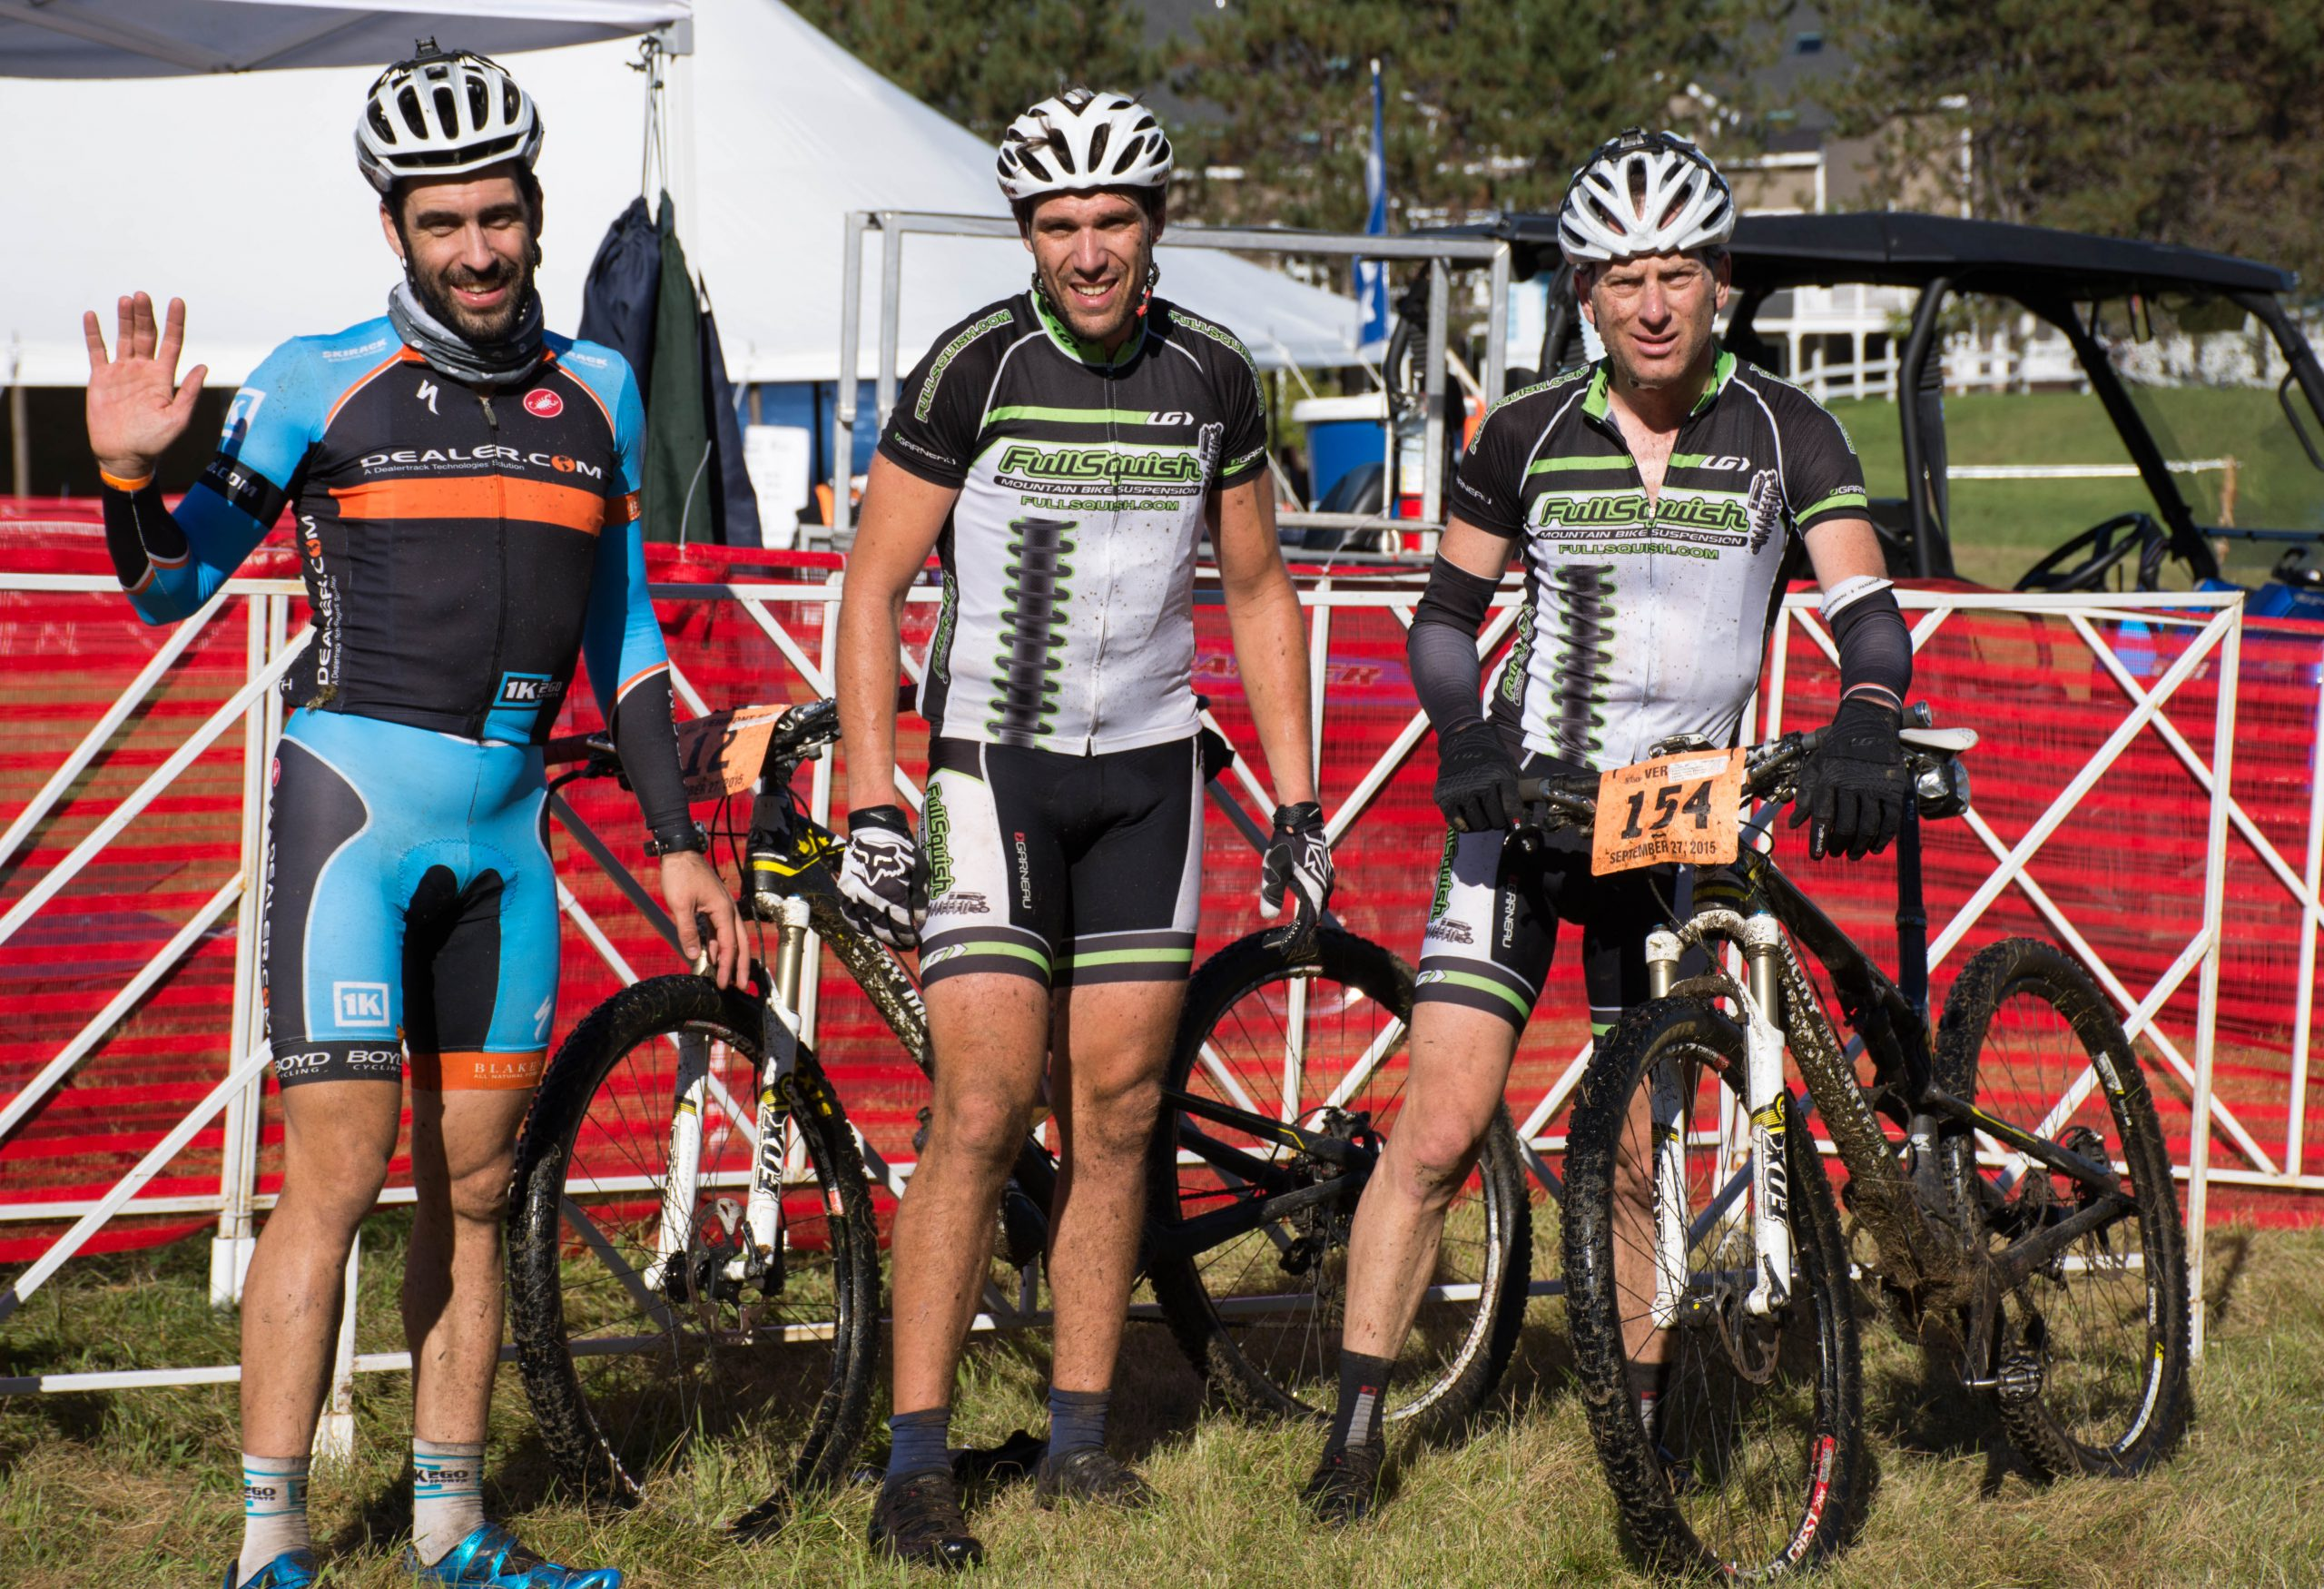 23rd Annual Vermont 50 Mountain Bike or Ultra Run